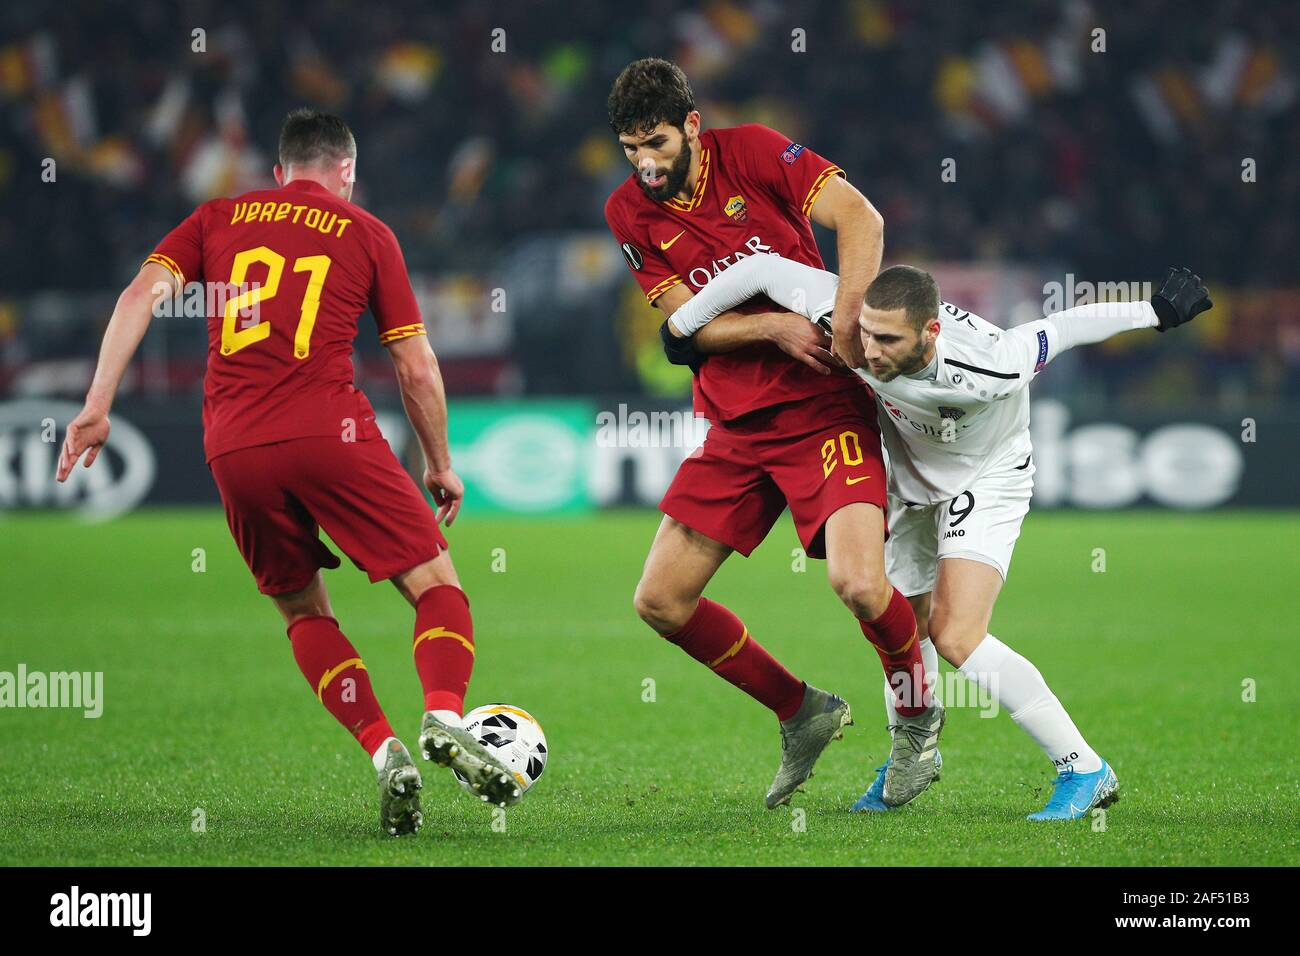 Federico Fazio of Roma (C), Jordan Veretout of Roma (L) and Shon Weissman of Wolfsberg (R) in action during the UEFA Europa League, Group J football match between AS Roma and Wolfsberg AC on December 12, 2019 at Stadio Olimpico in Rome, Italy - Photo Federico Proietti/ESPA-Images Stock Photo